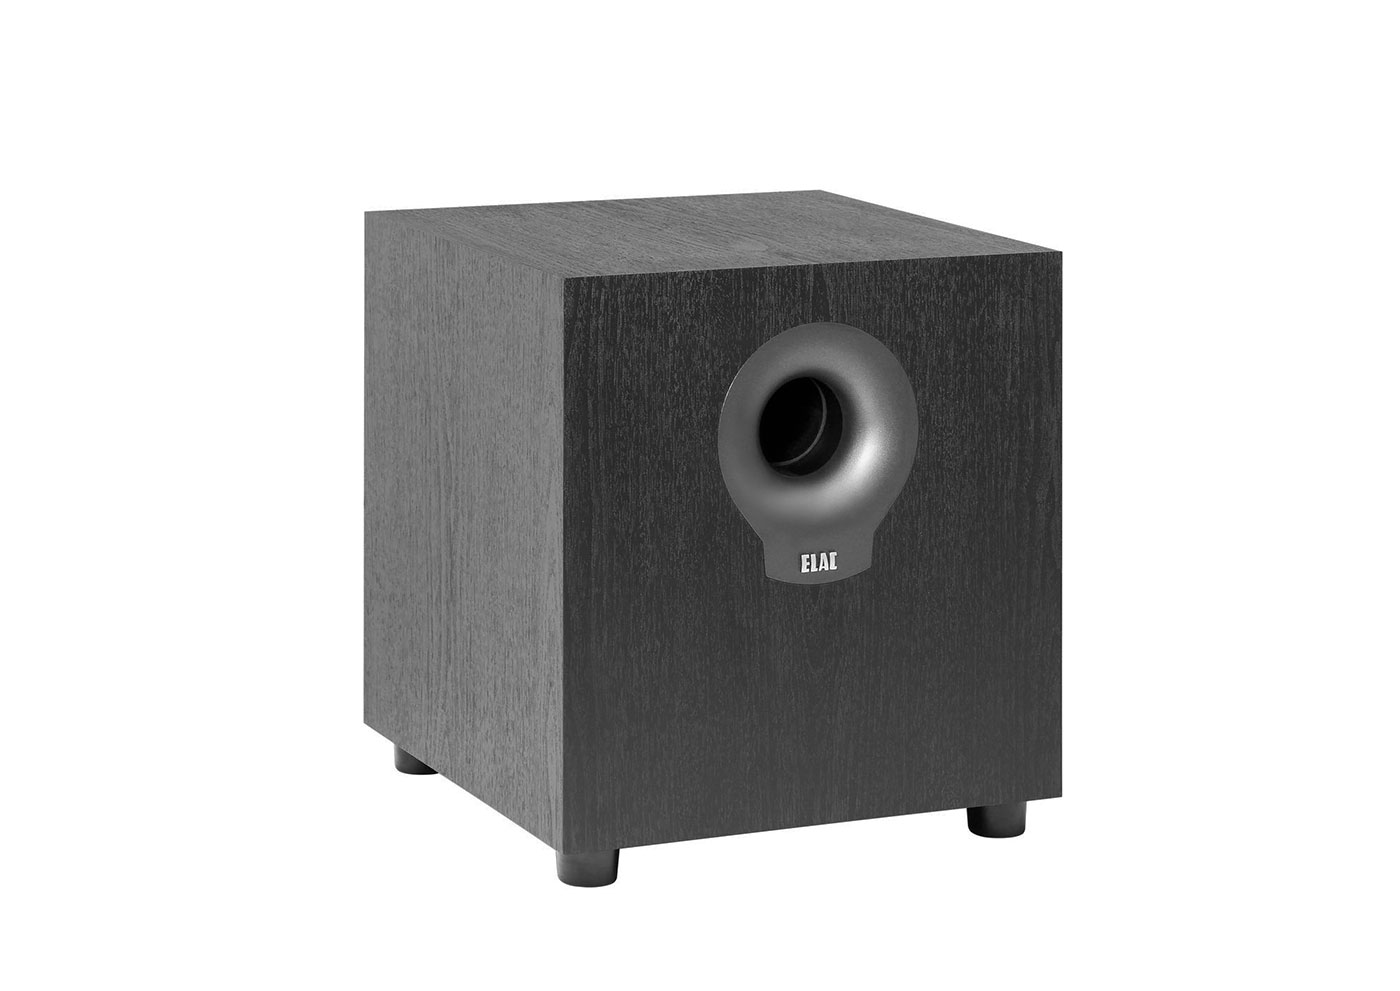 Best Budget Home Theater # 2